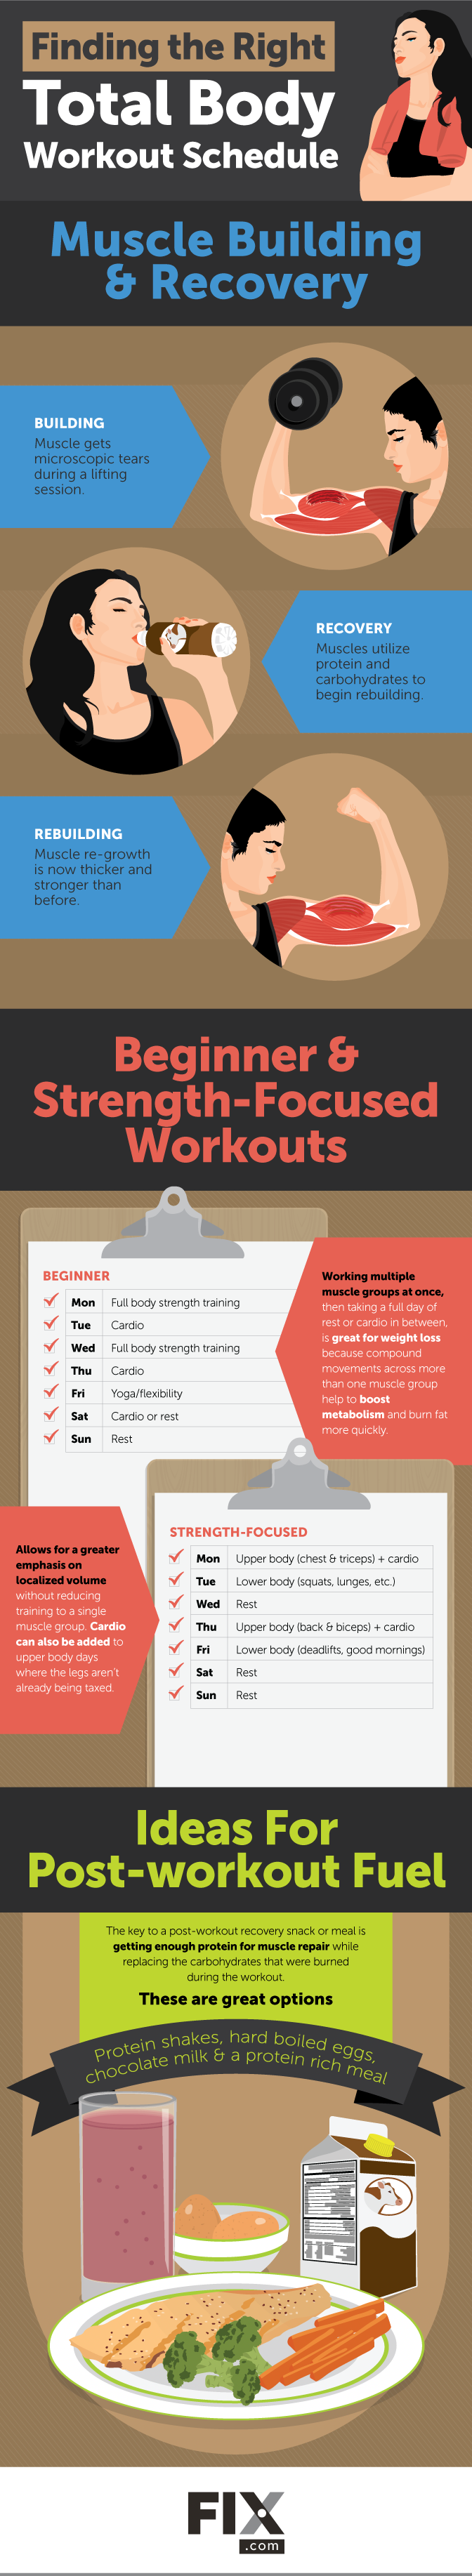 Schedule & Balance your Full Body Workout + Recovery [Infographic] | ecogreenlove